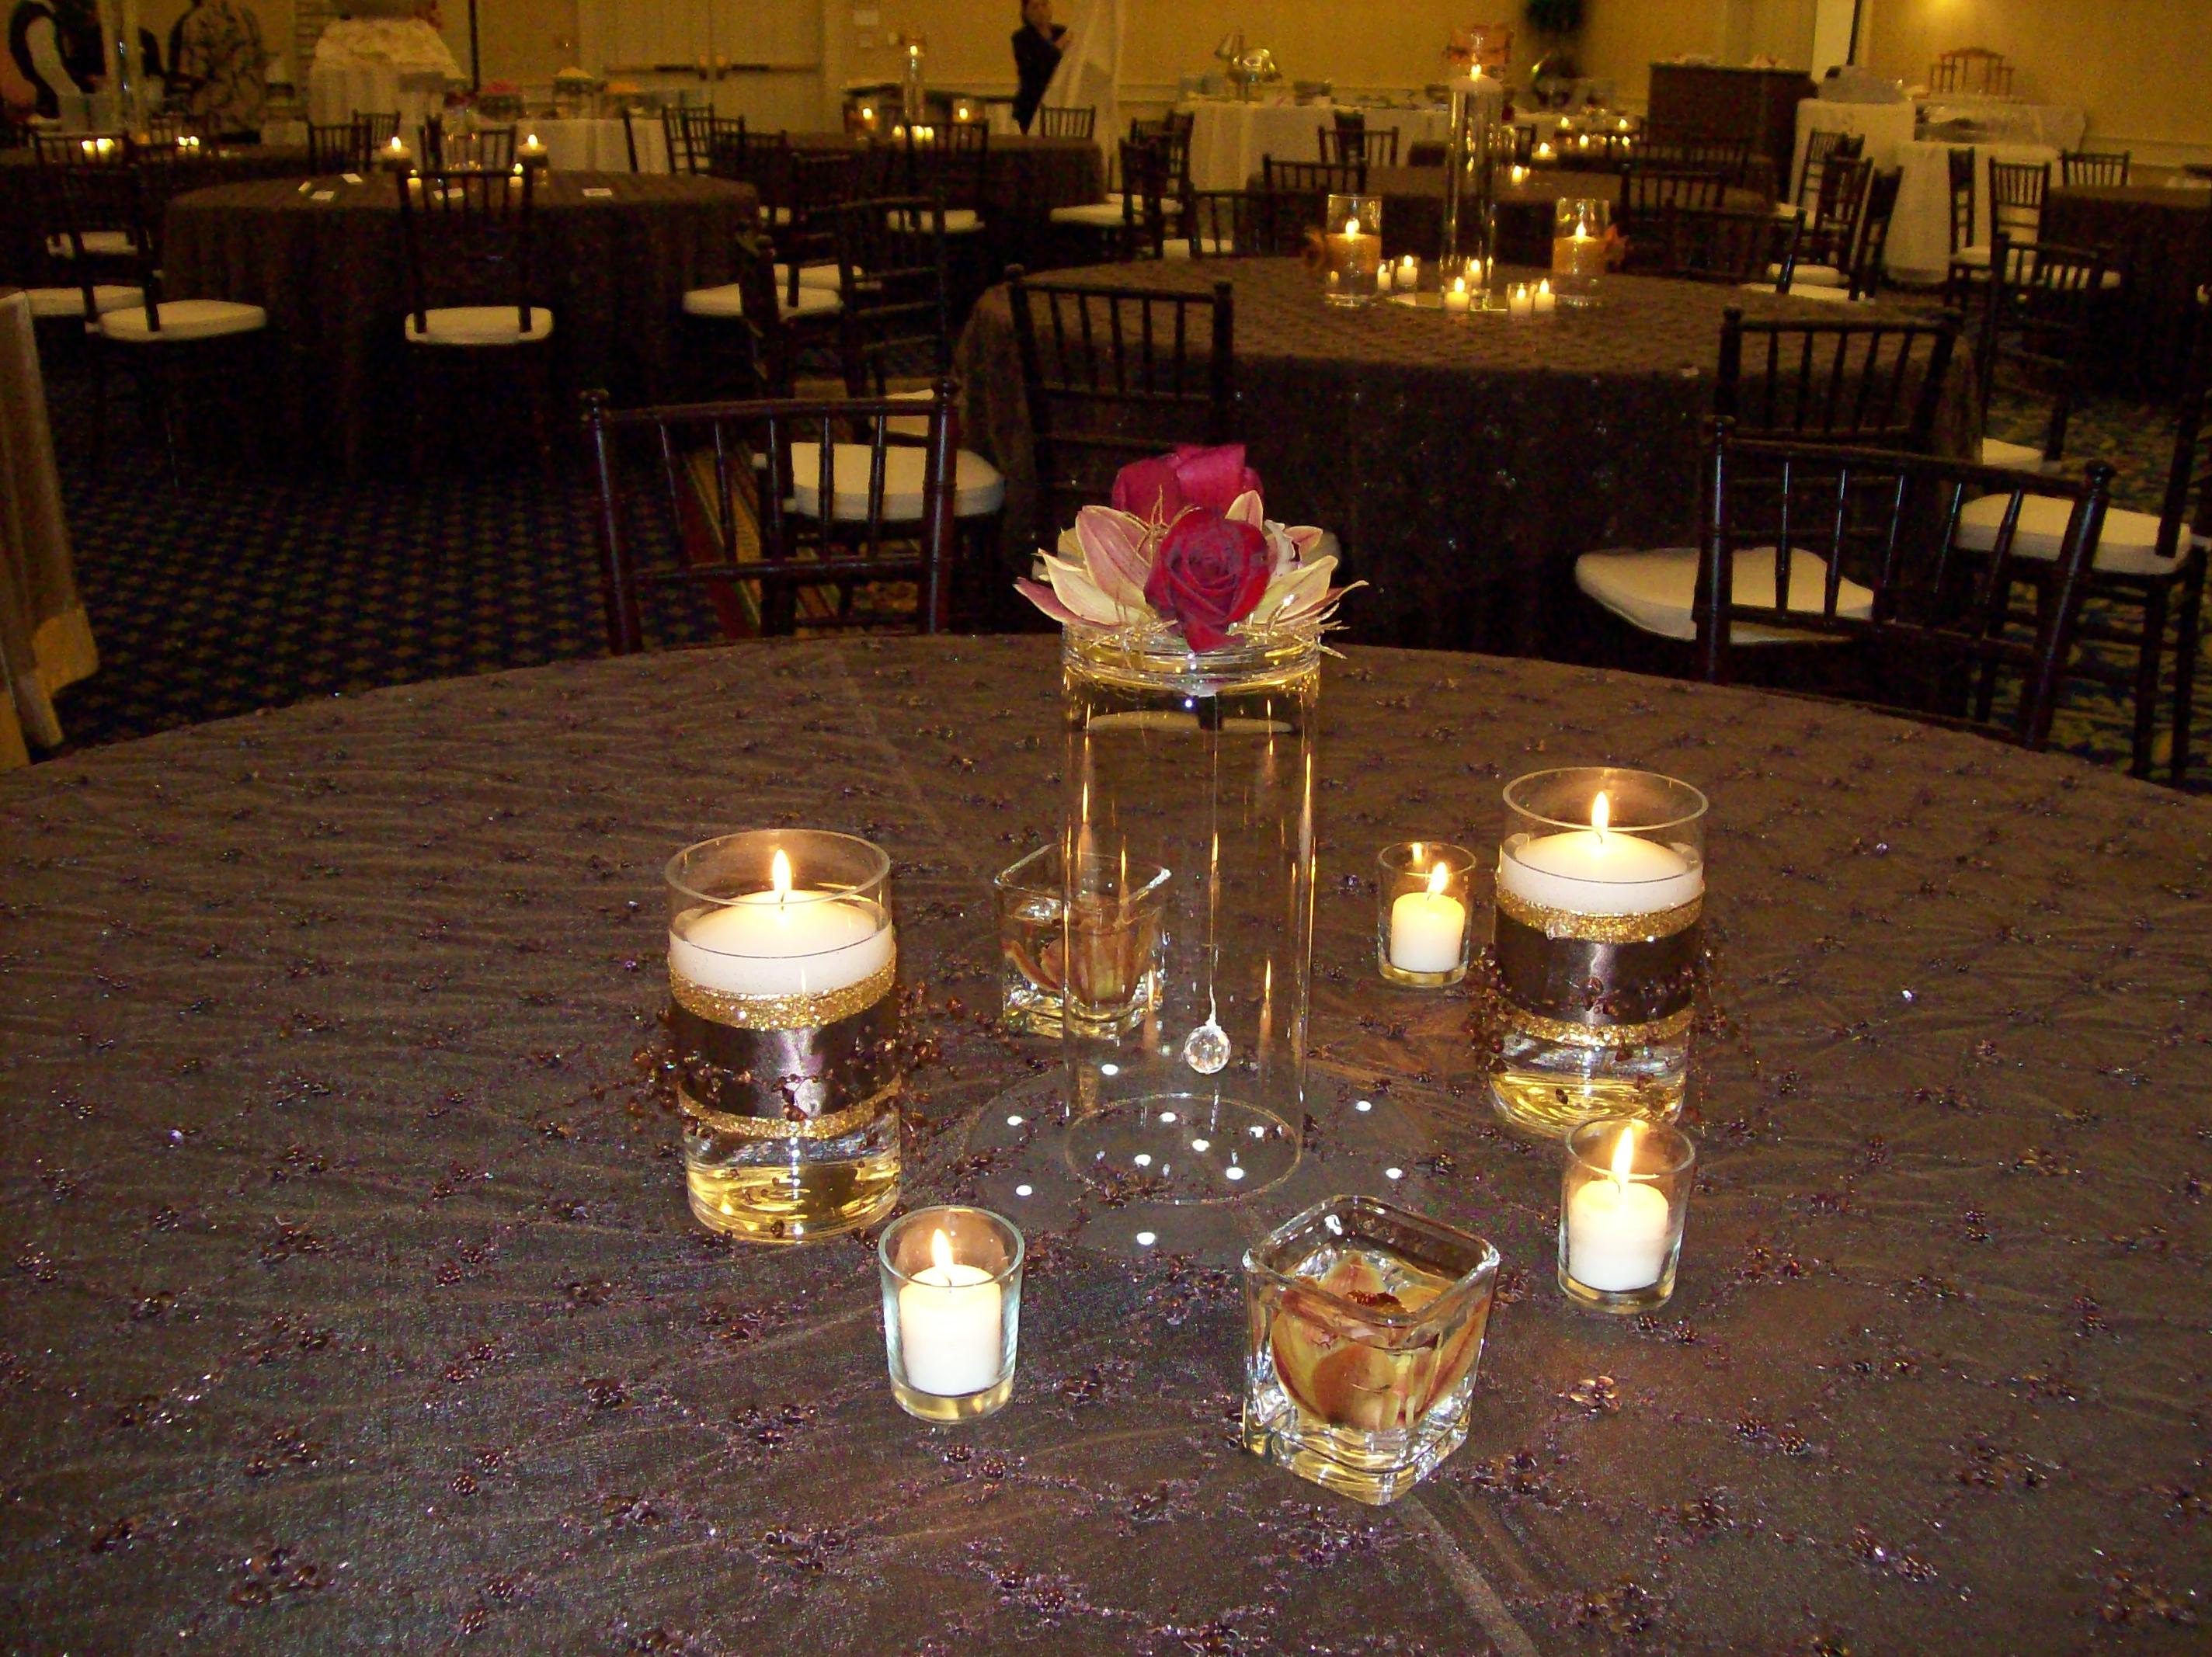 The candle grouping below, and to the right, features a crystal